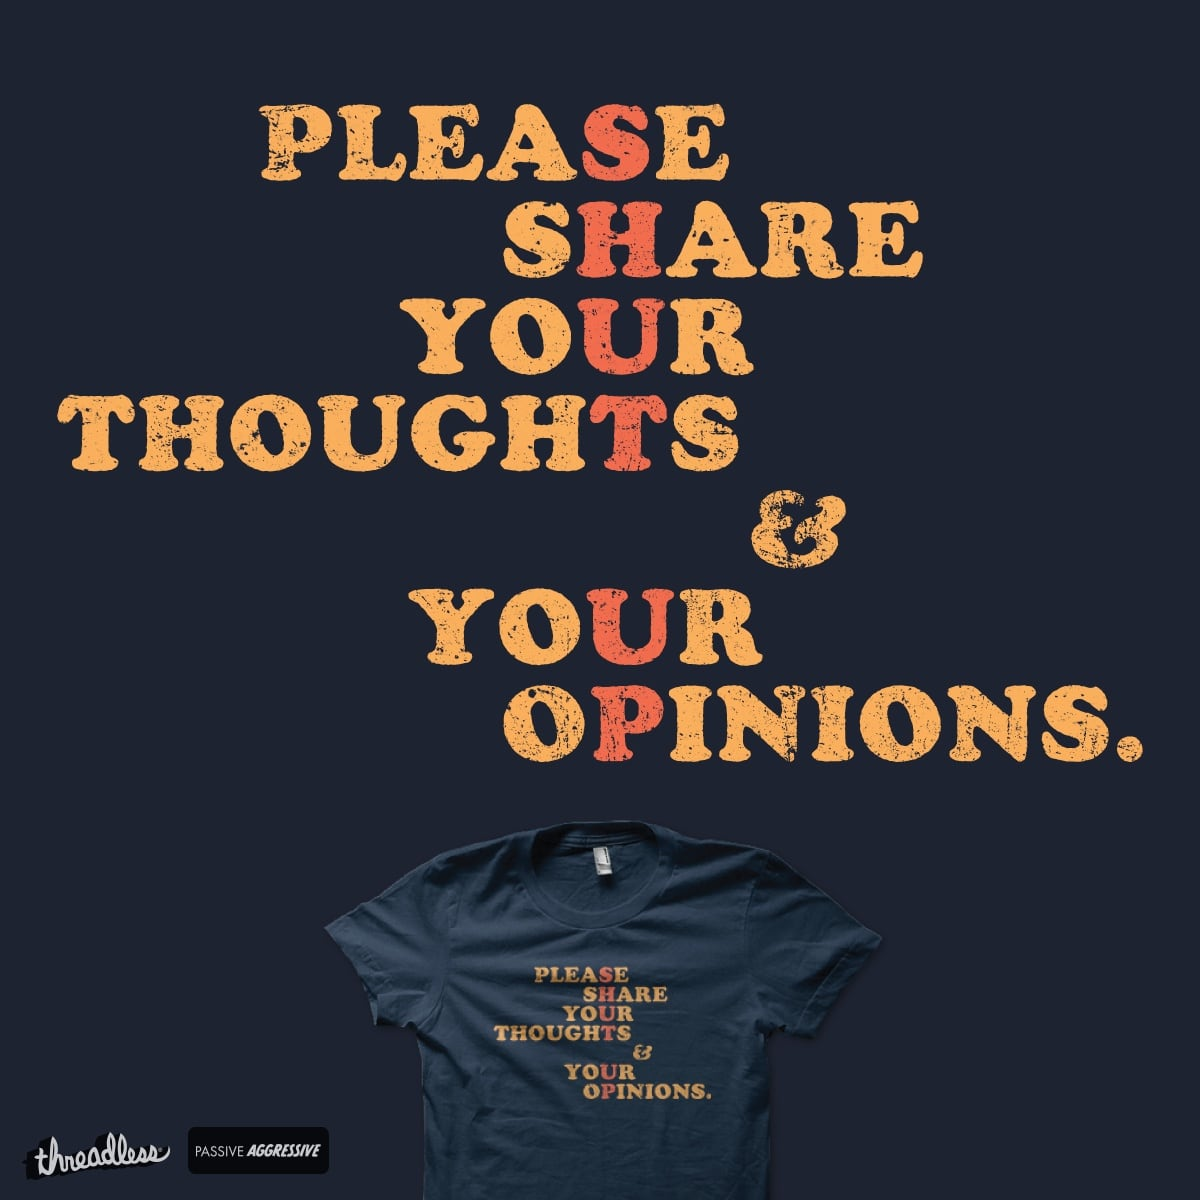 Shut Up And Talk by Shadyjibes on Threadless